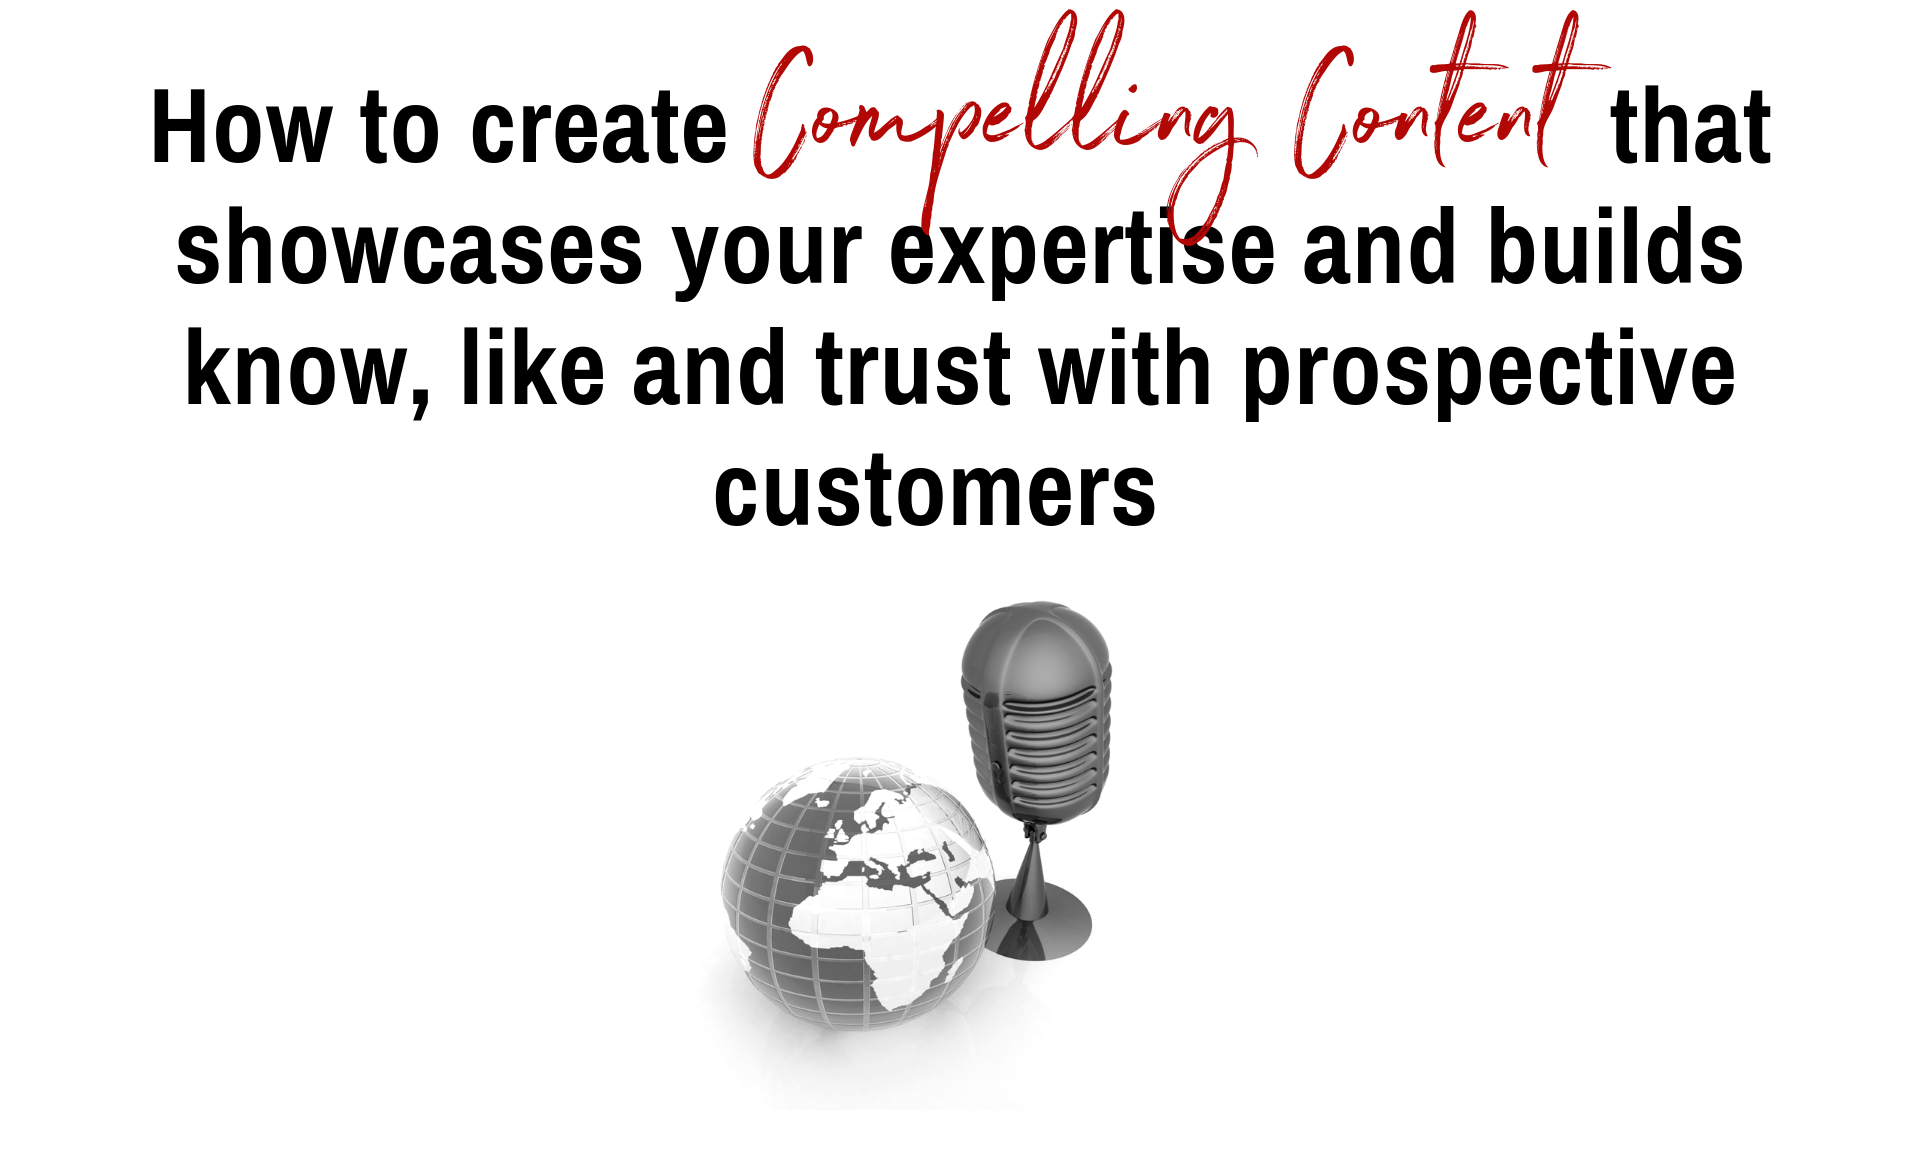 How to create Compelling Content that showcases your expertise and builds know, like and trust with prospective customers